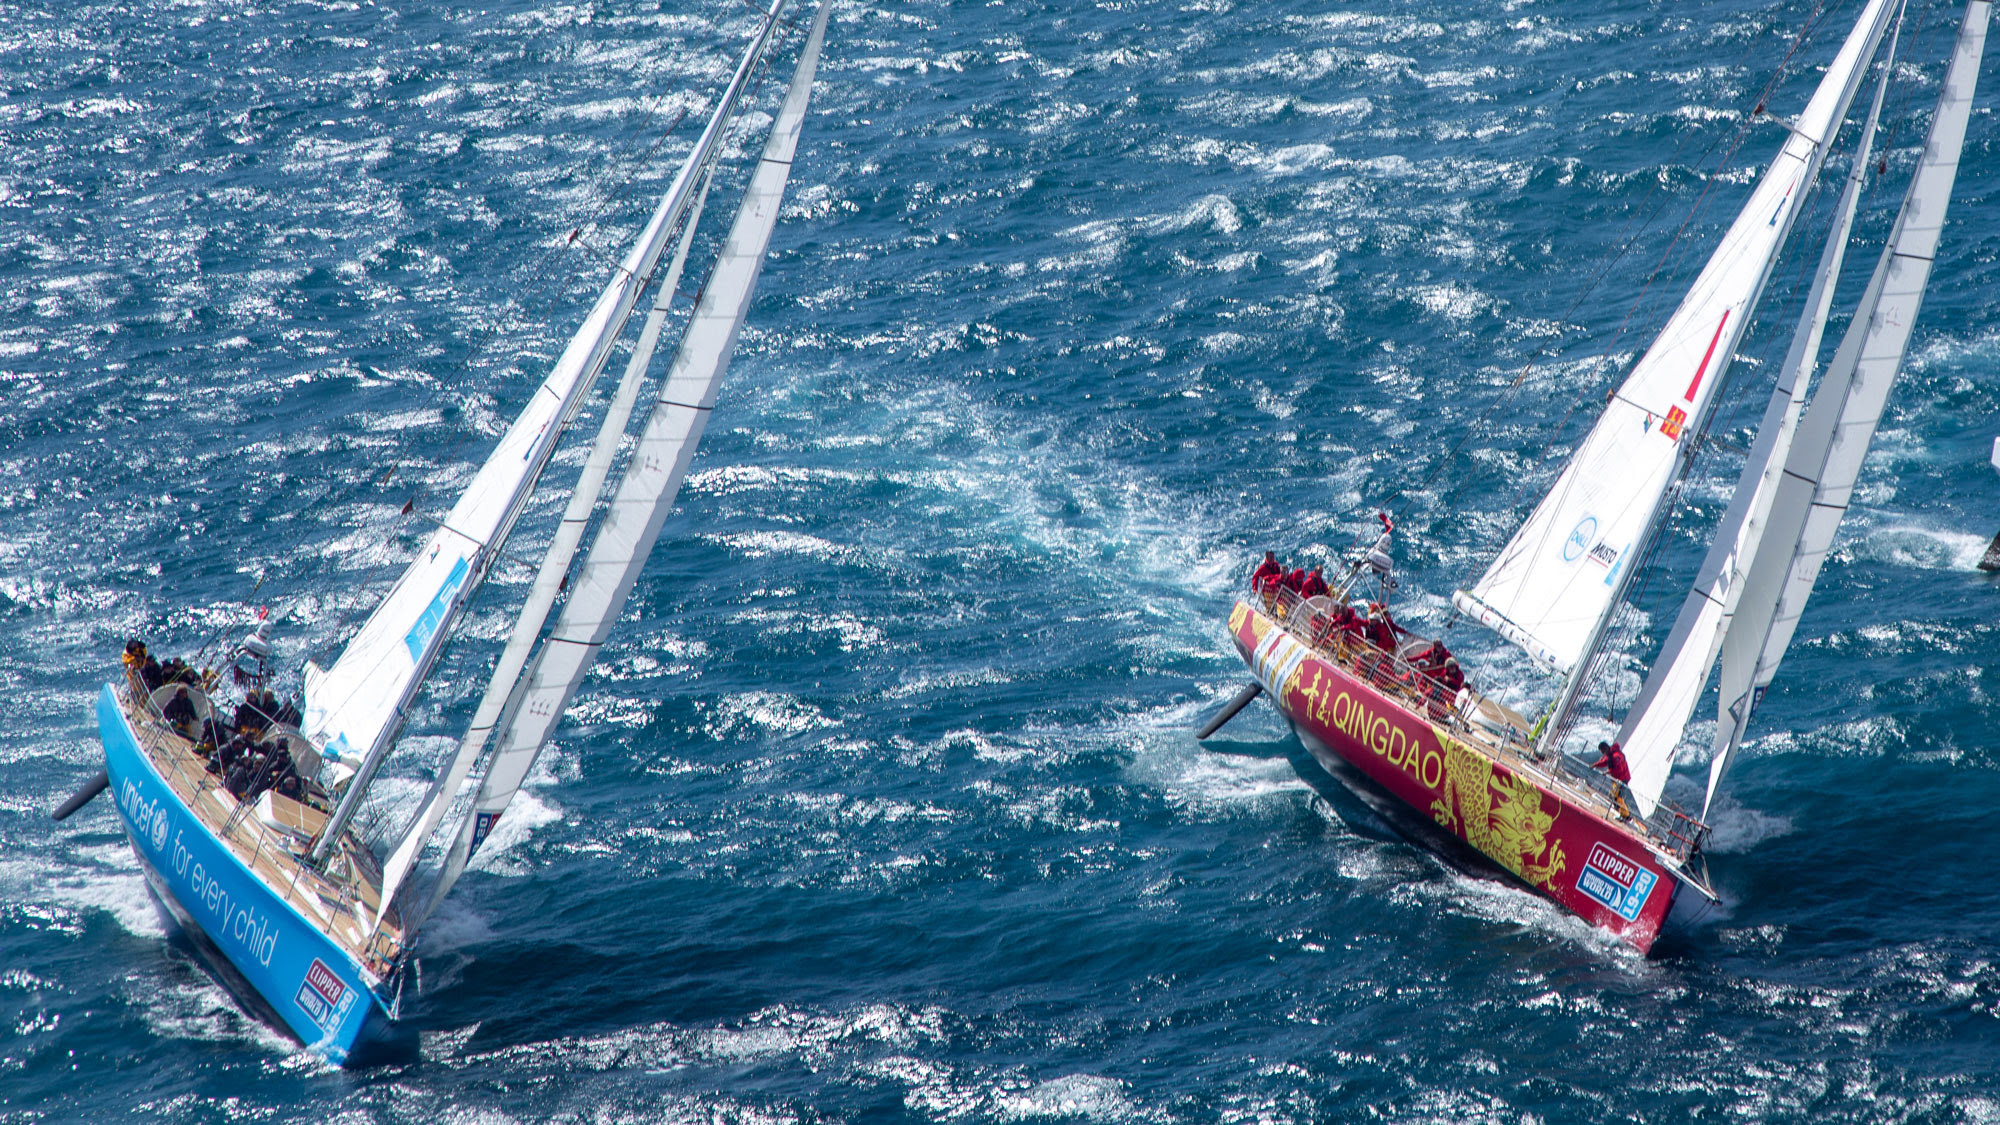 Clipper Race The Zhuhai and Ha Long Bay, Viet Nam team yachts battle it out on Table Bay, Cape Town